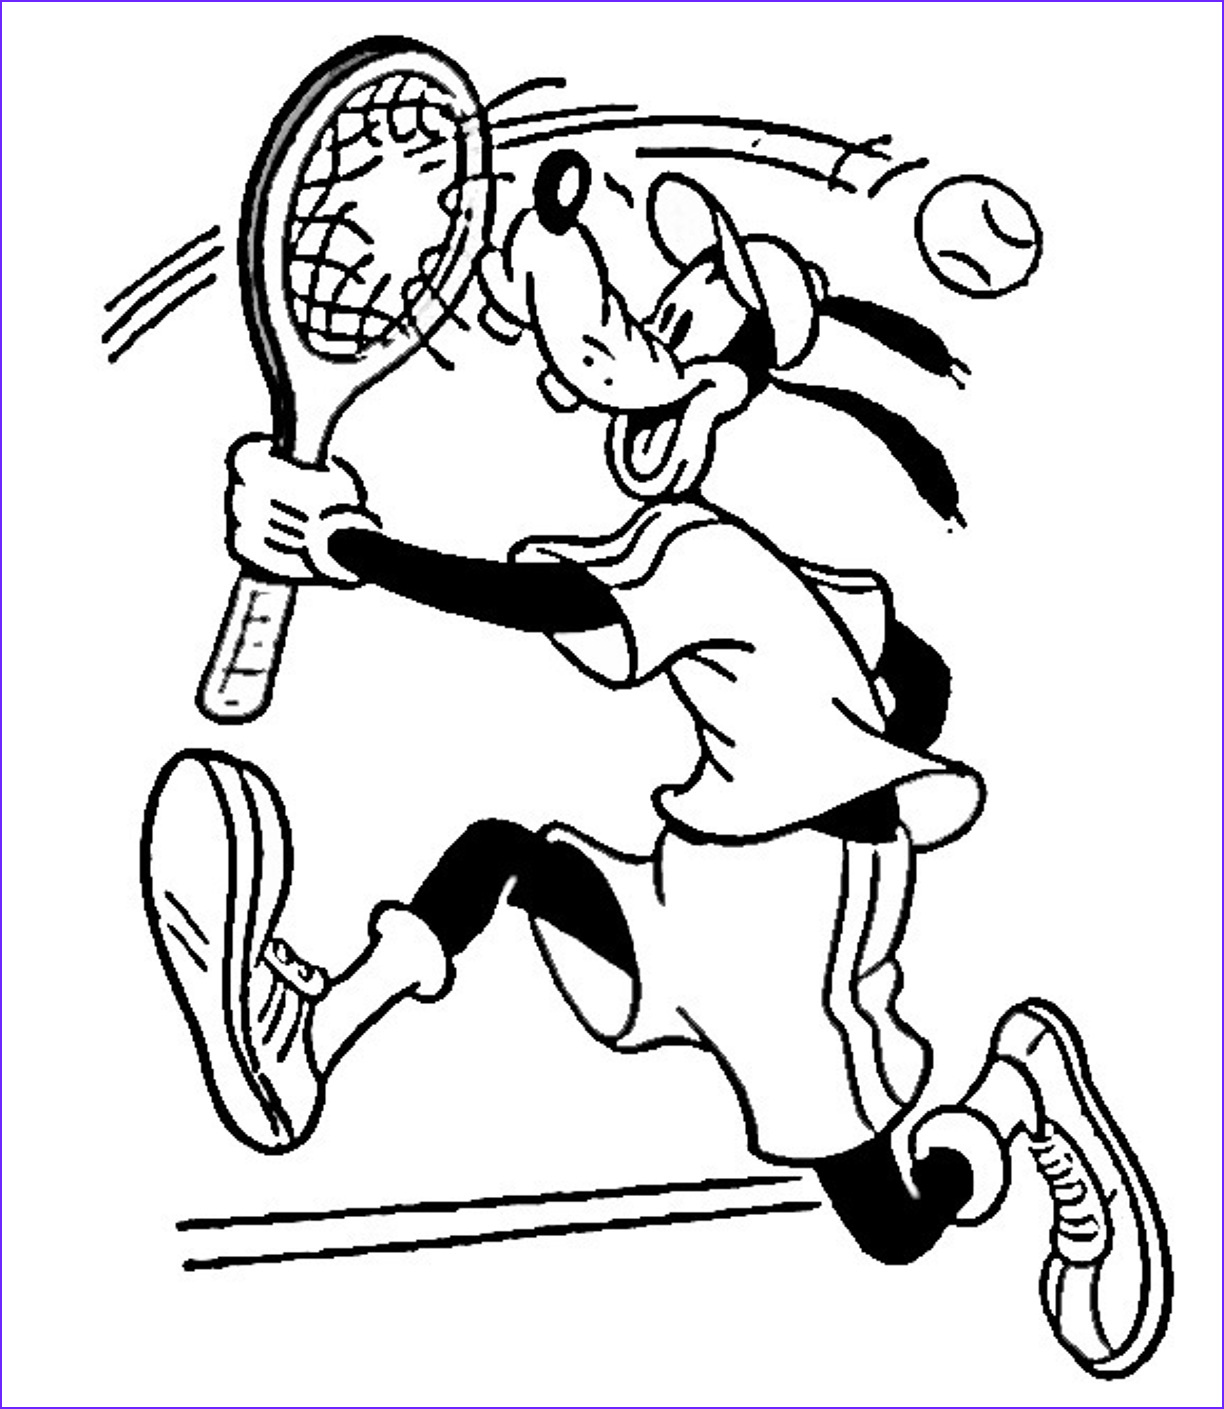 Printable Coloring Books Cool Photos Tennis Coloring Pages for Childrens Printable for Free